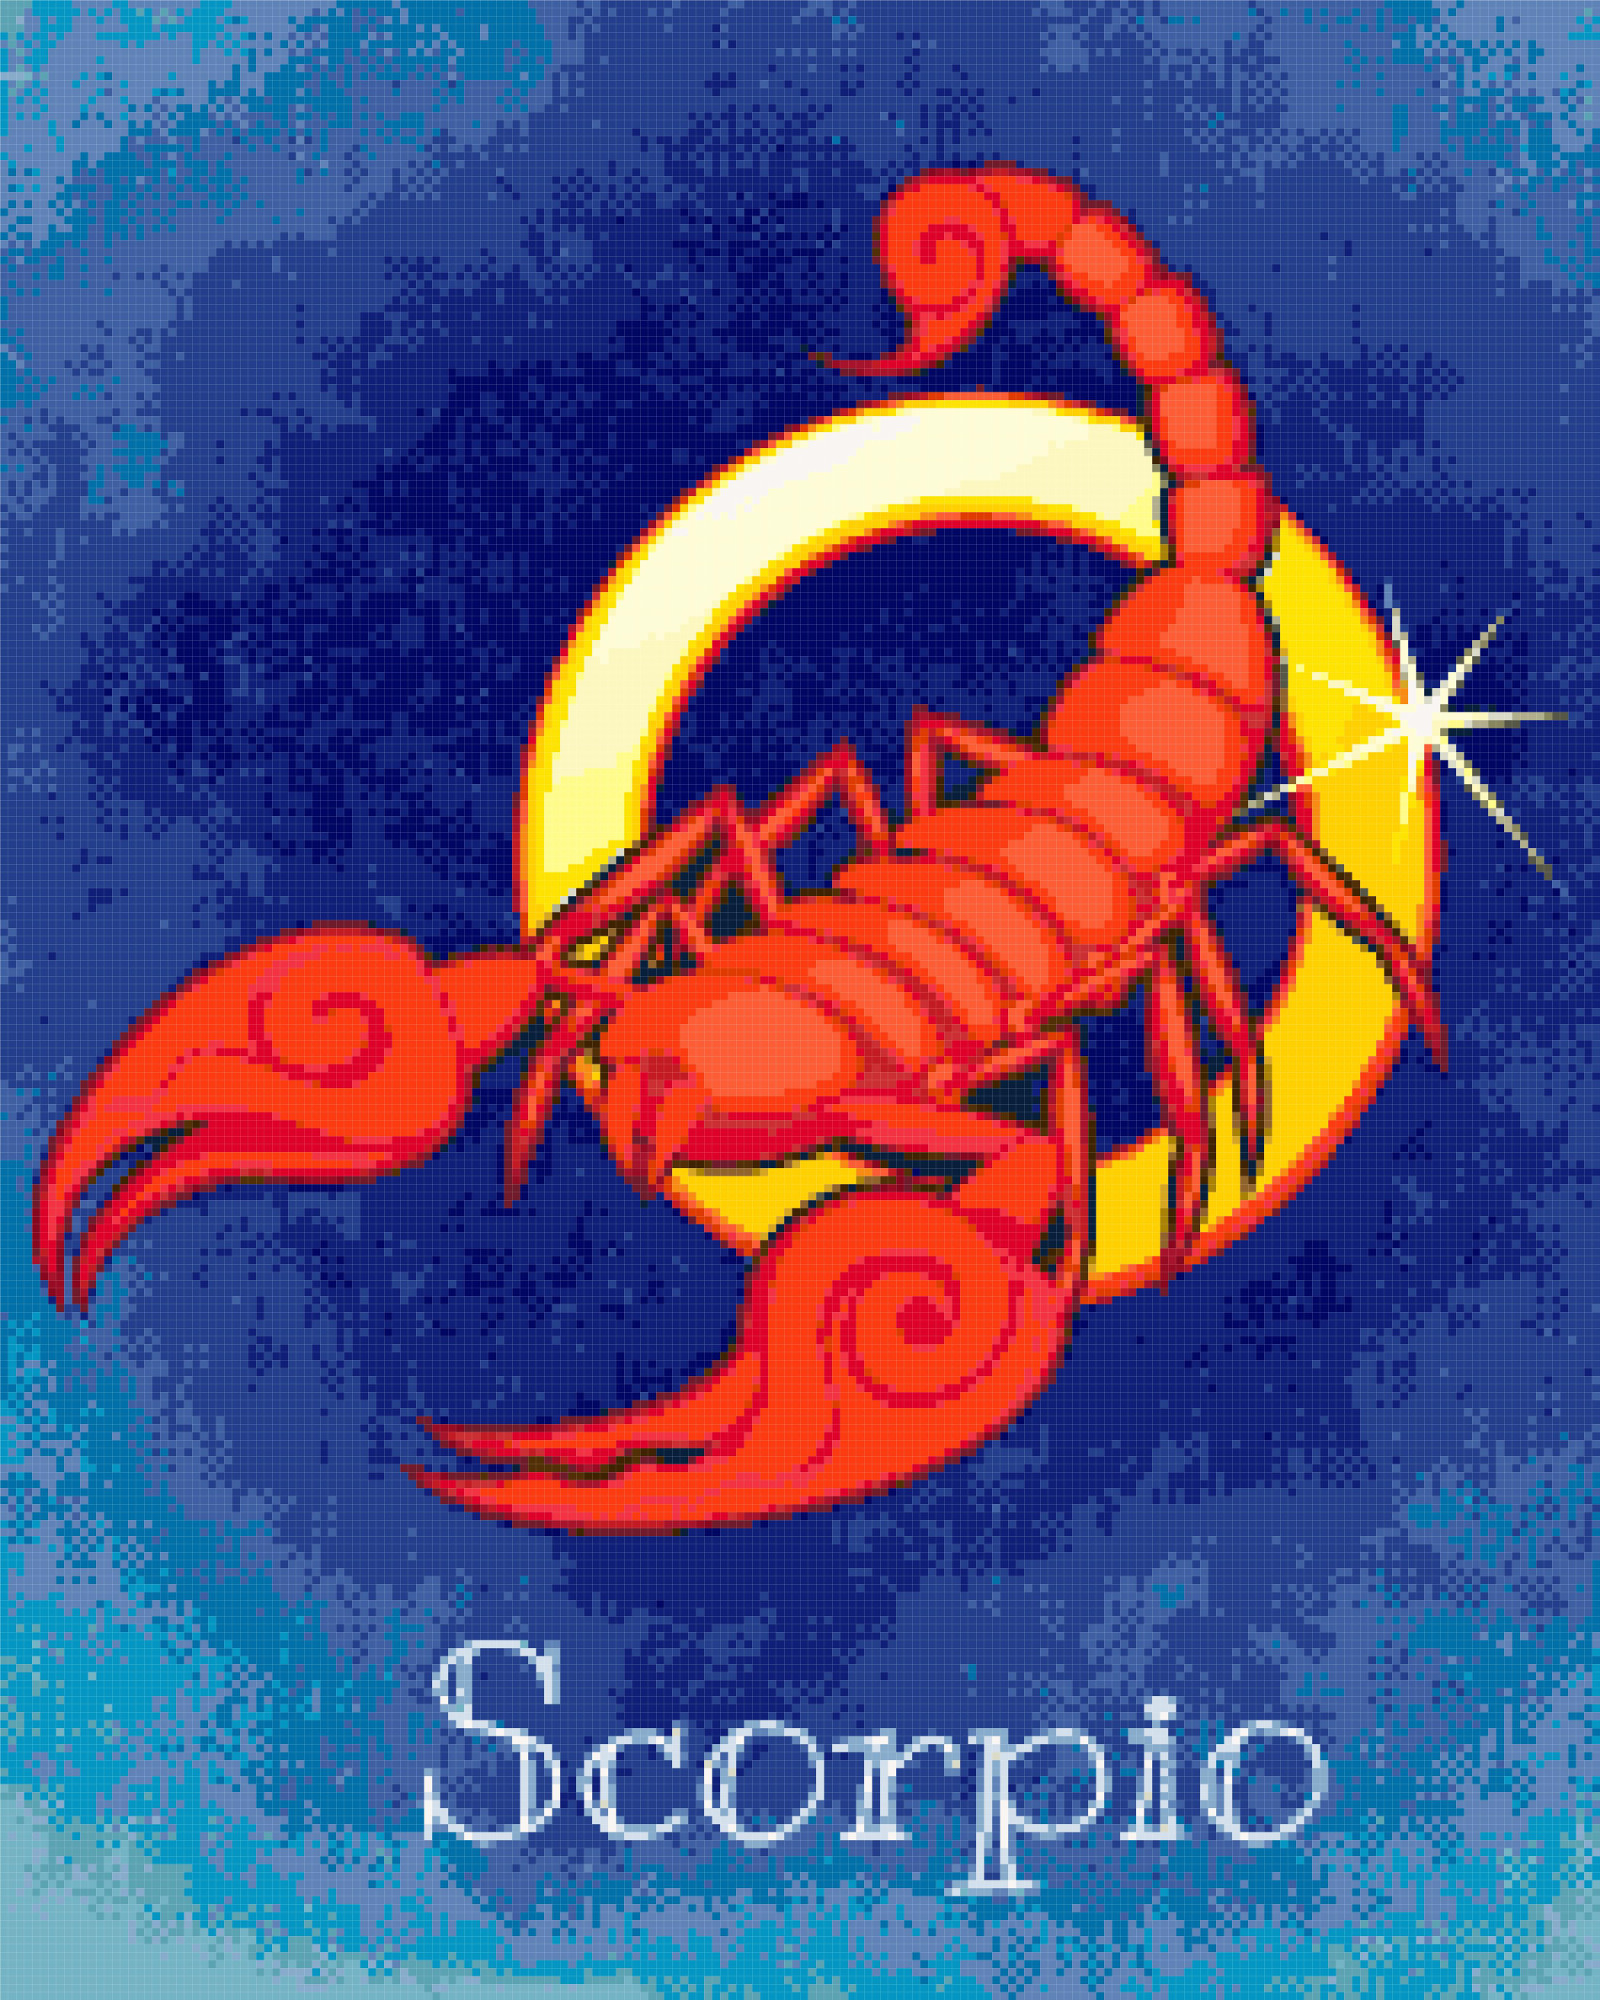 zodiac scorpio cross stitch image